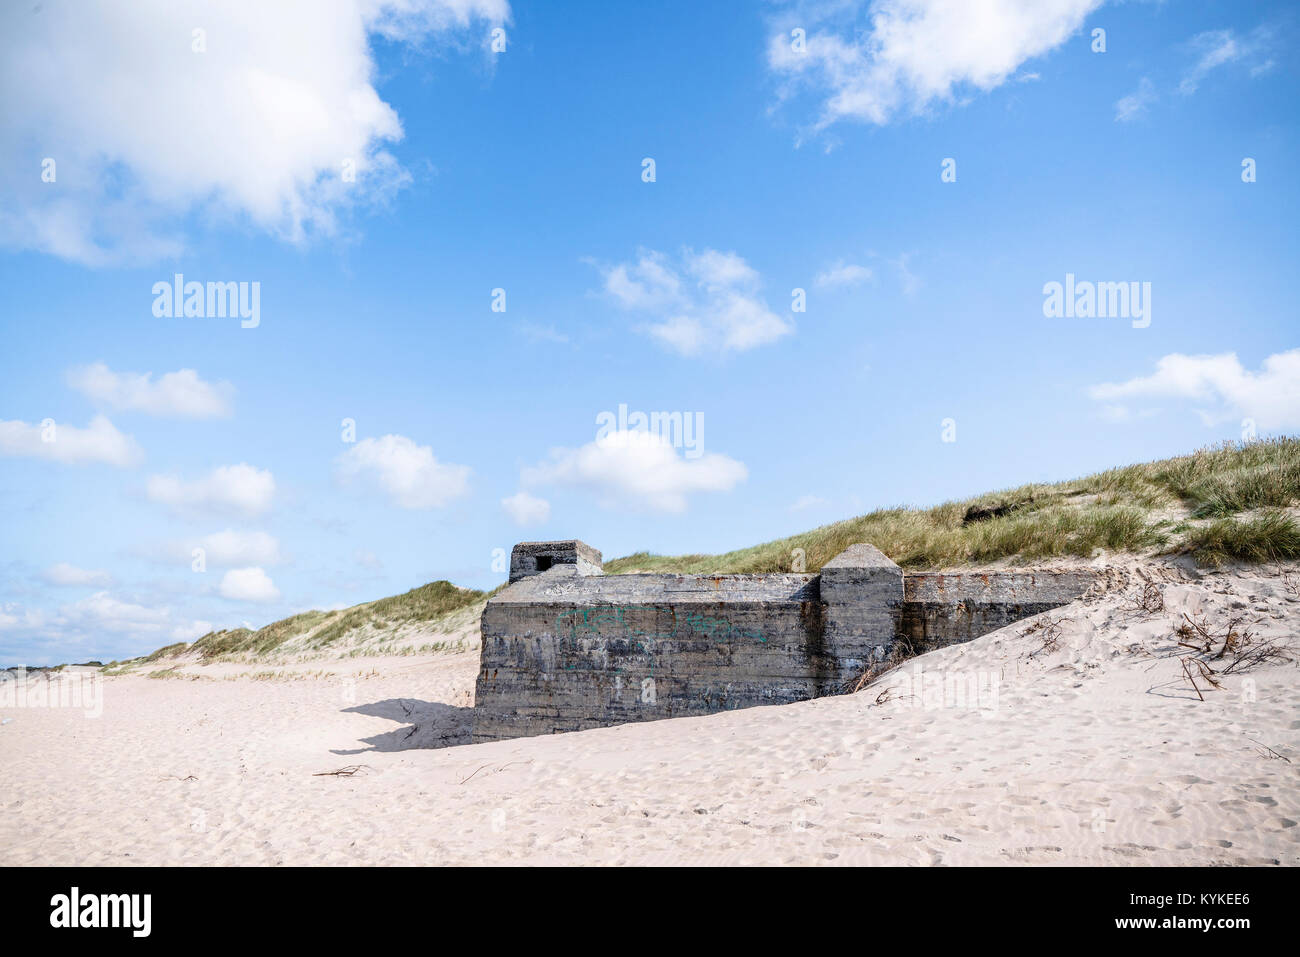 Dune on a beach with ruins of 2nd world war bunkers in the summer under a blue sky - Stock Image